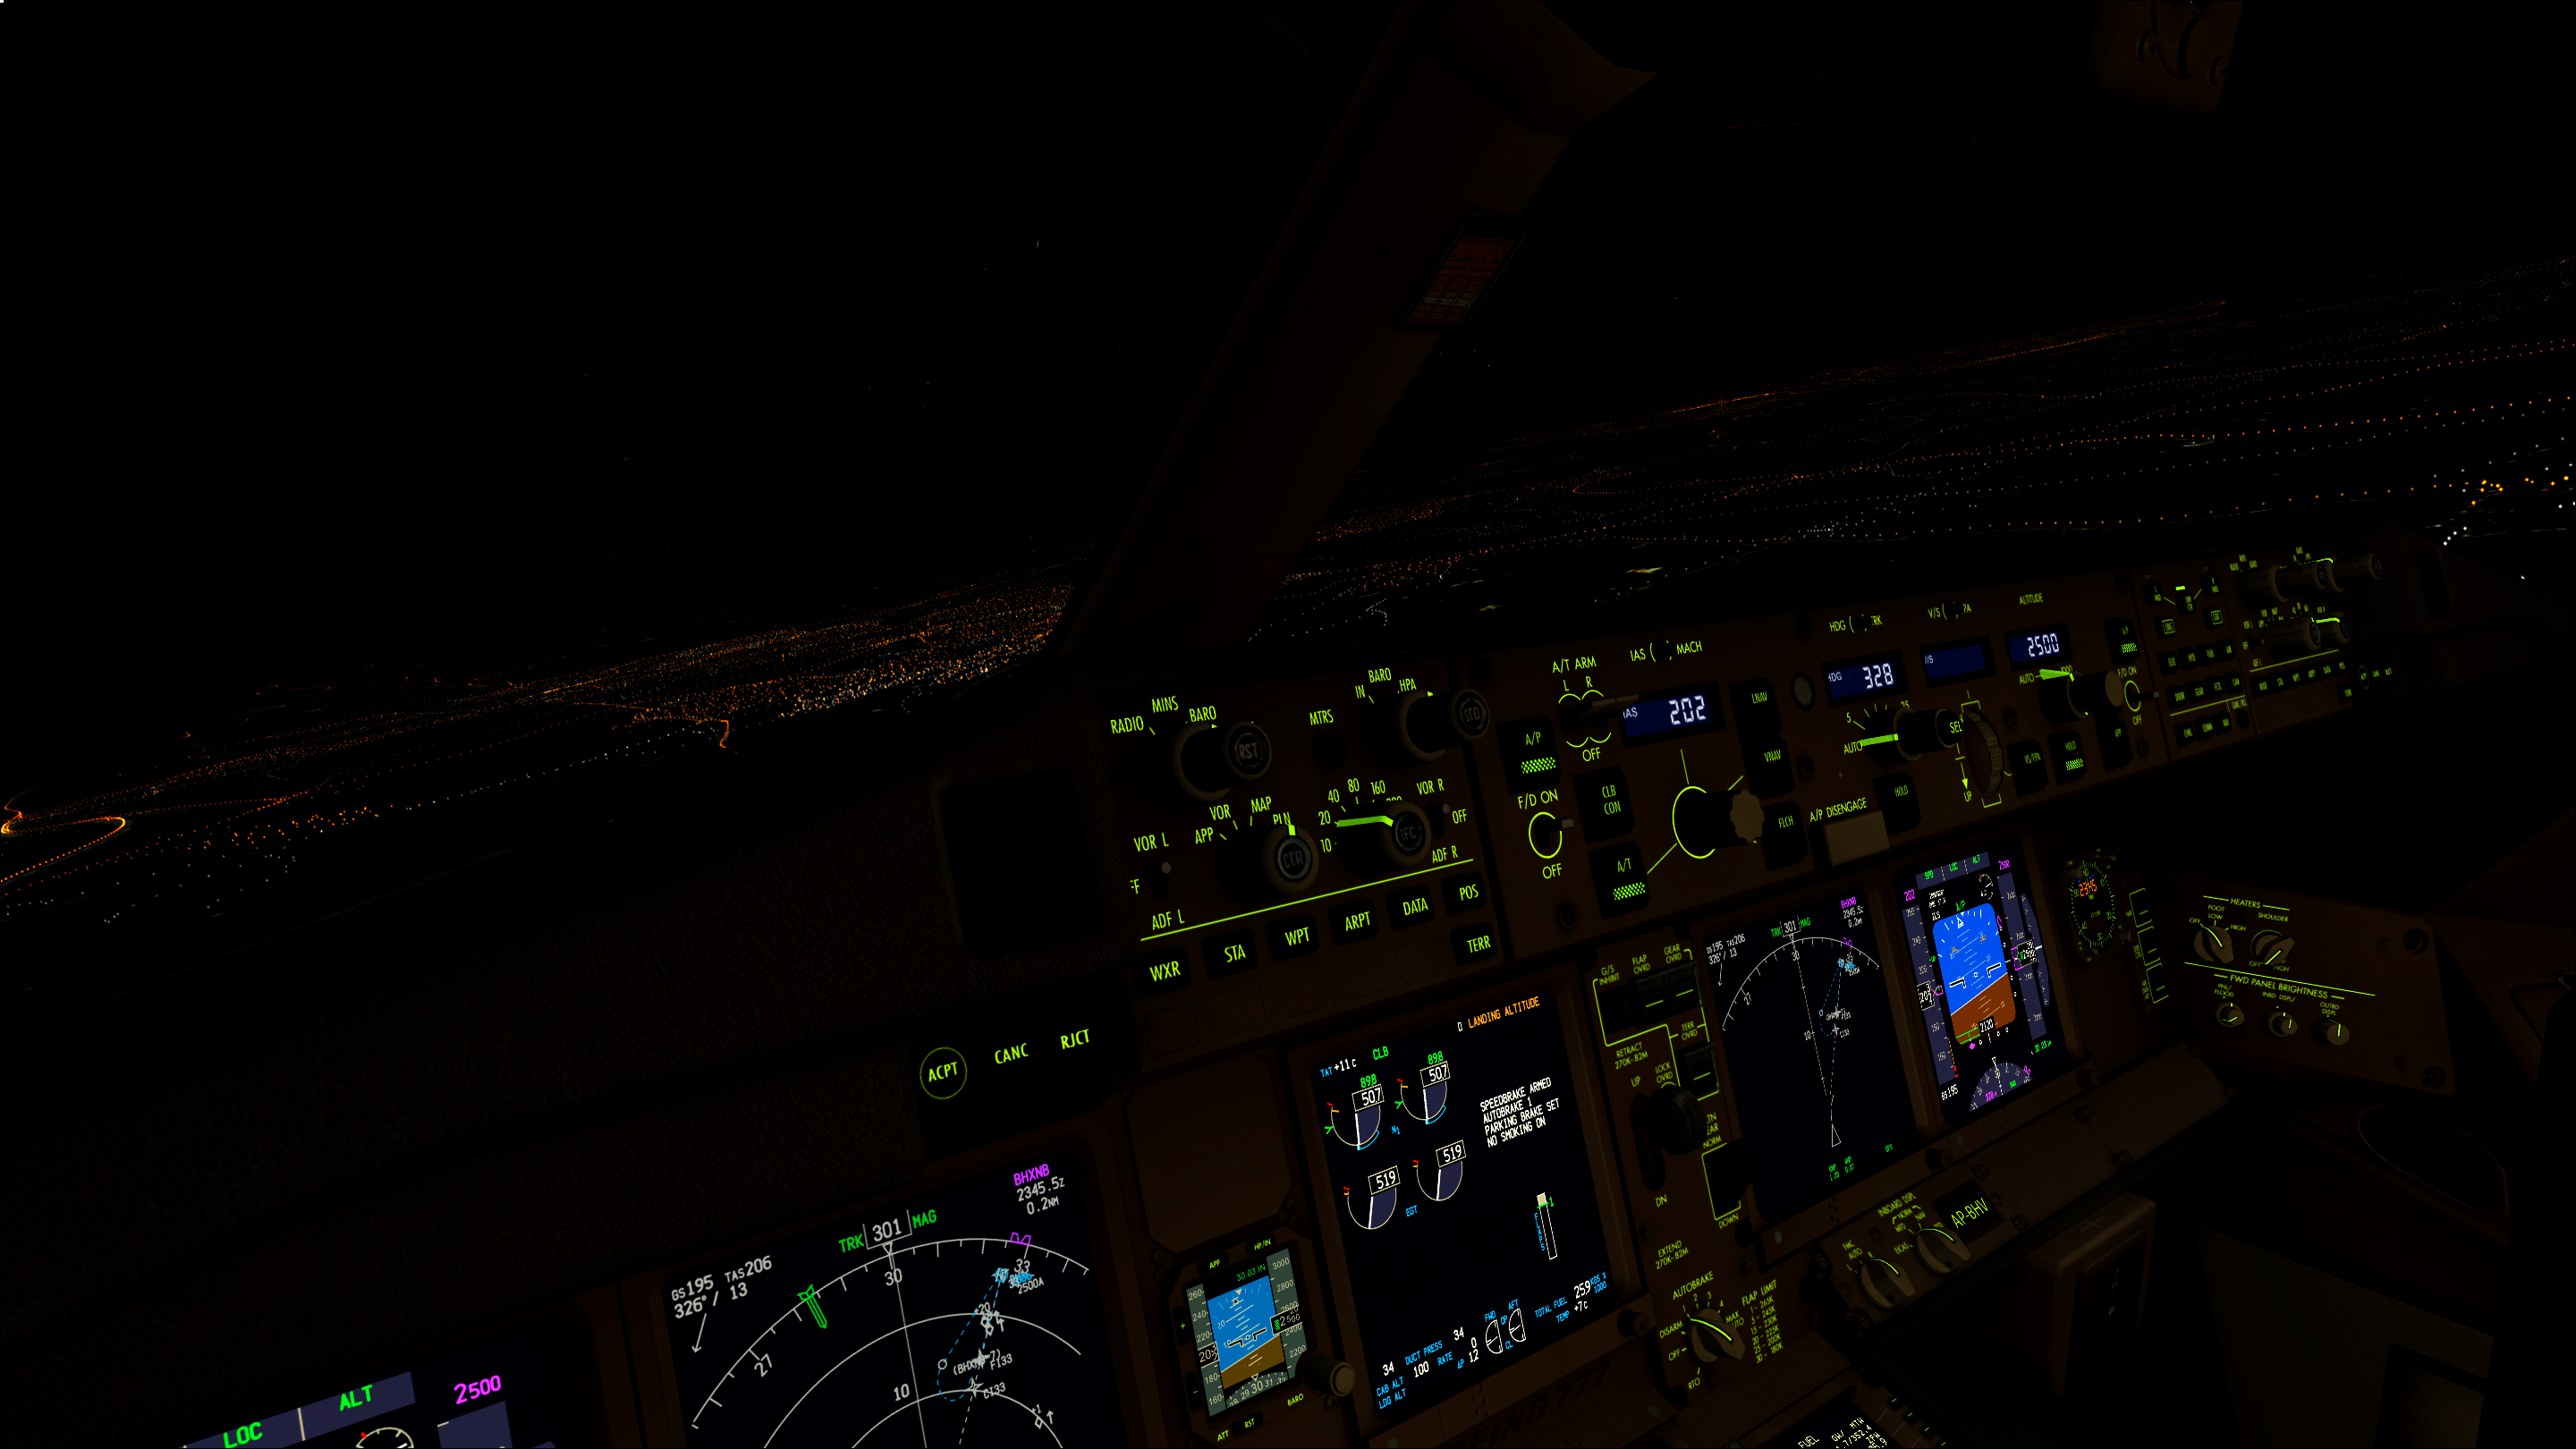 fsx%202014-11-23%2017-07-36-00.png?dl=0